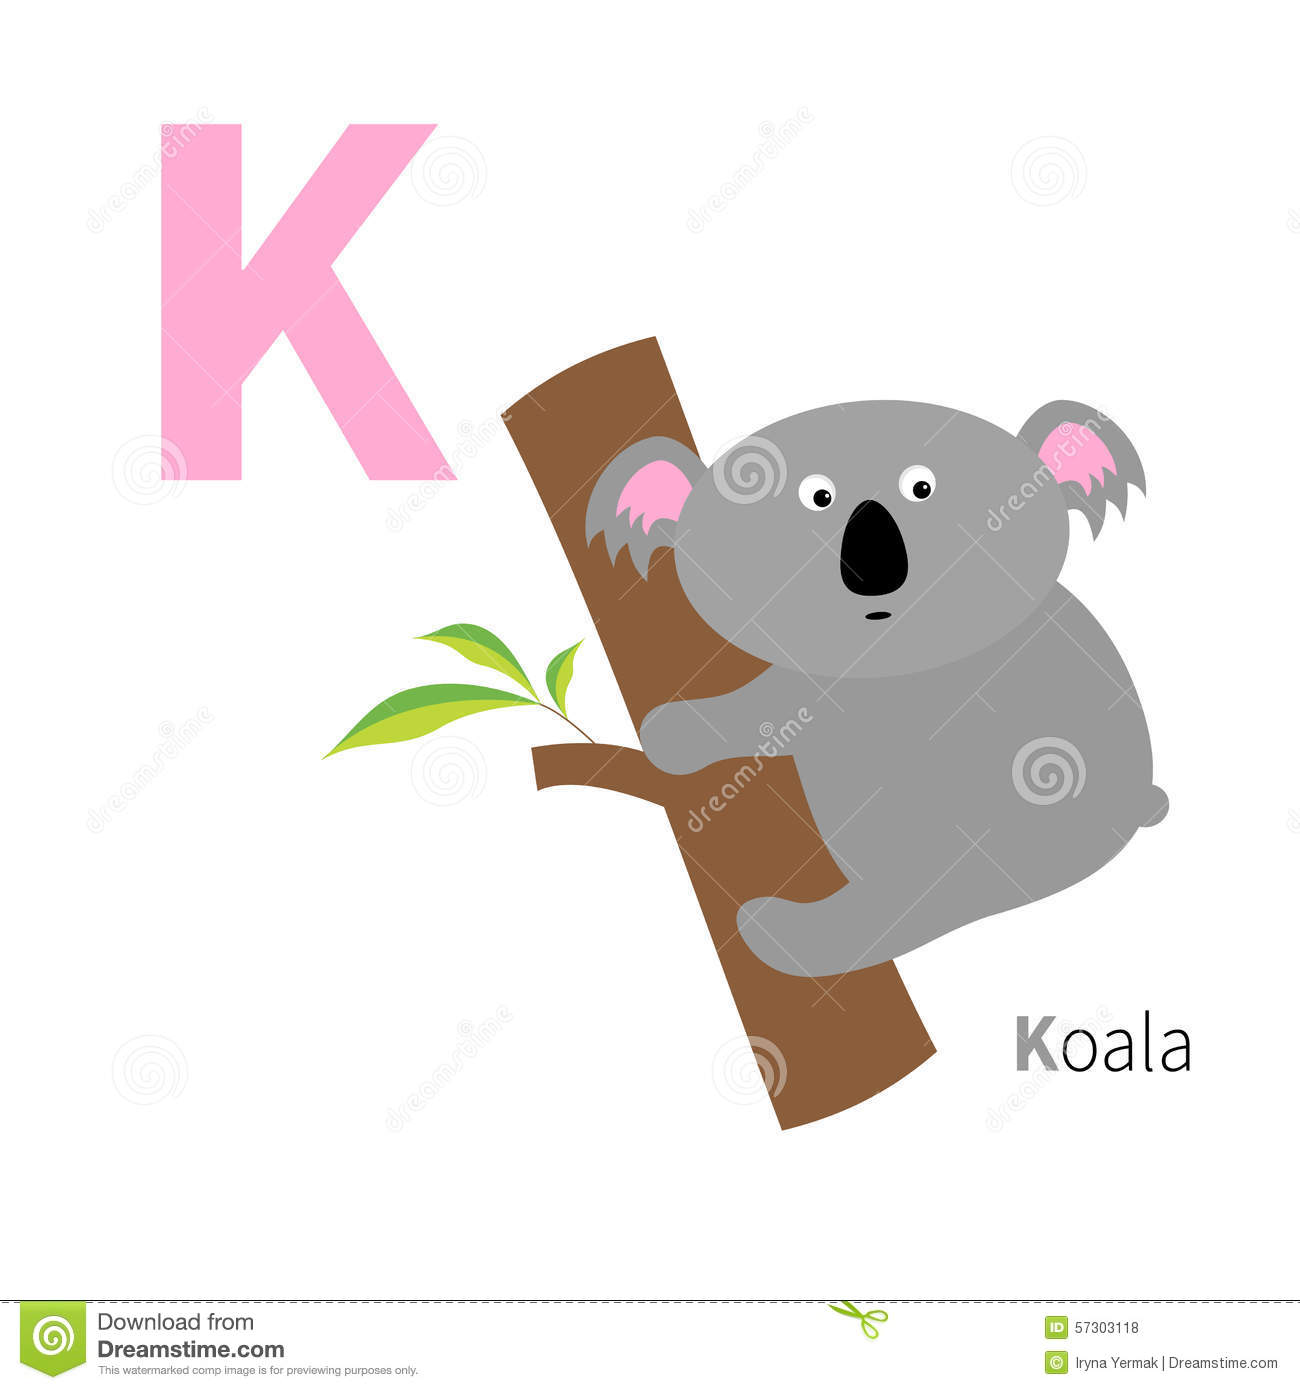 Stock Illustration Letter K Koala Zoo Alphabet English Abc Animals Education Cards Kids White Background Flat Design Vector Illustration Image57303118 on Preschool Letter D